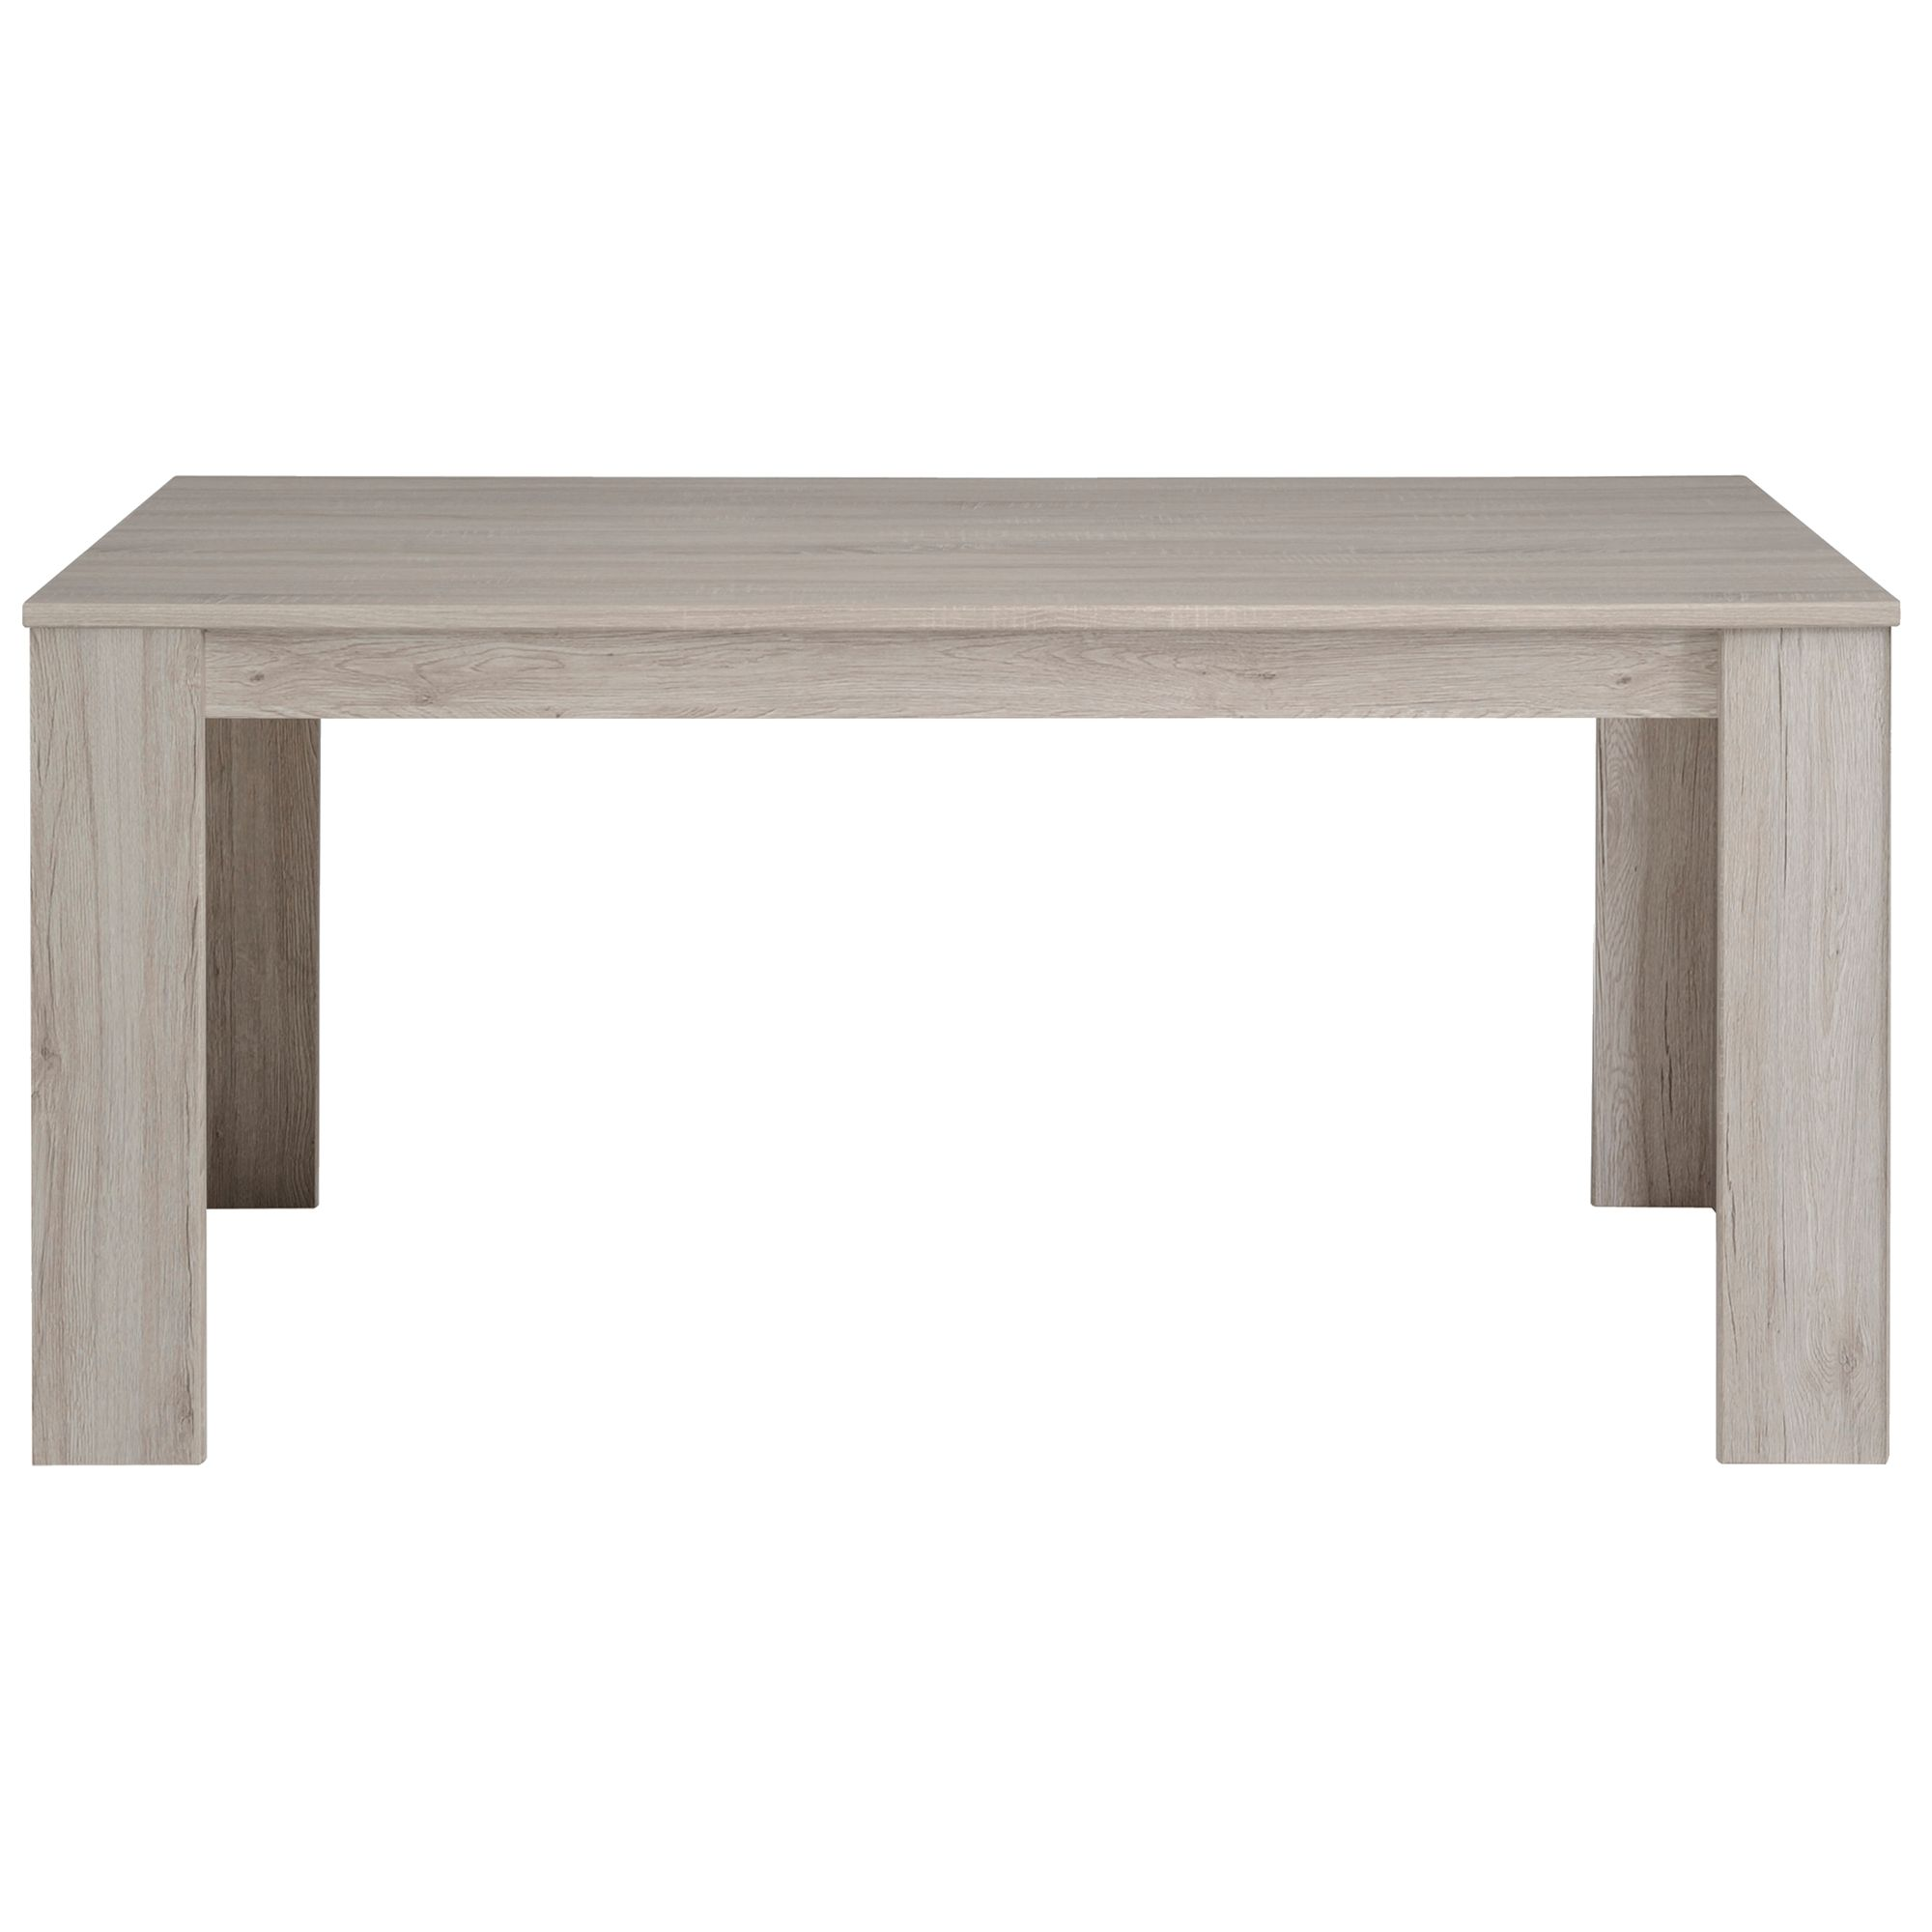 table design et pas cher - table ronde, carrée et rectangulaire | fly